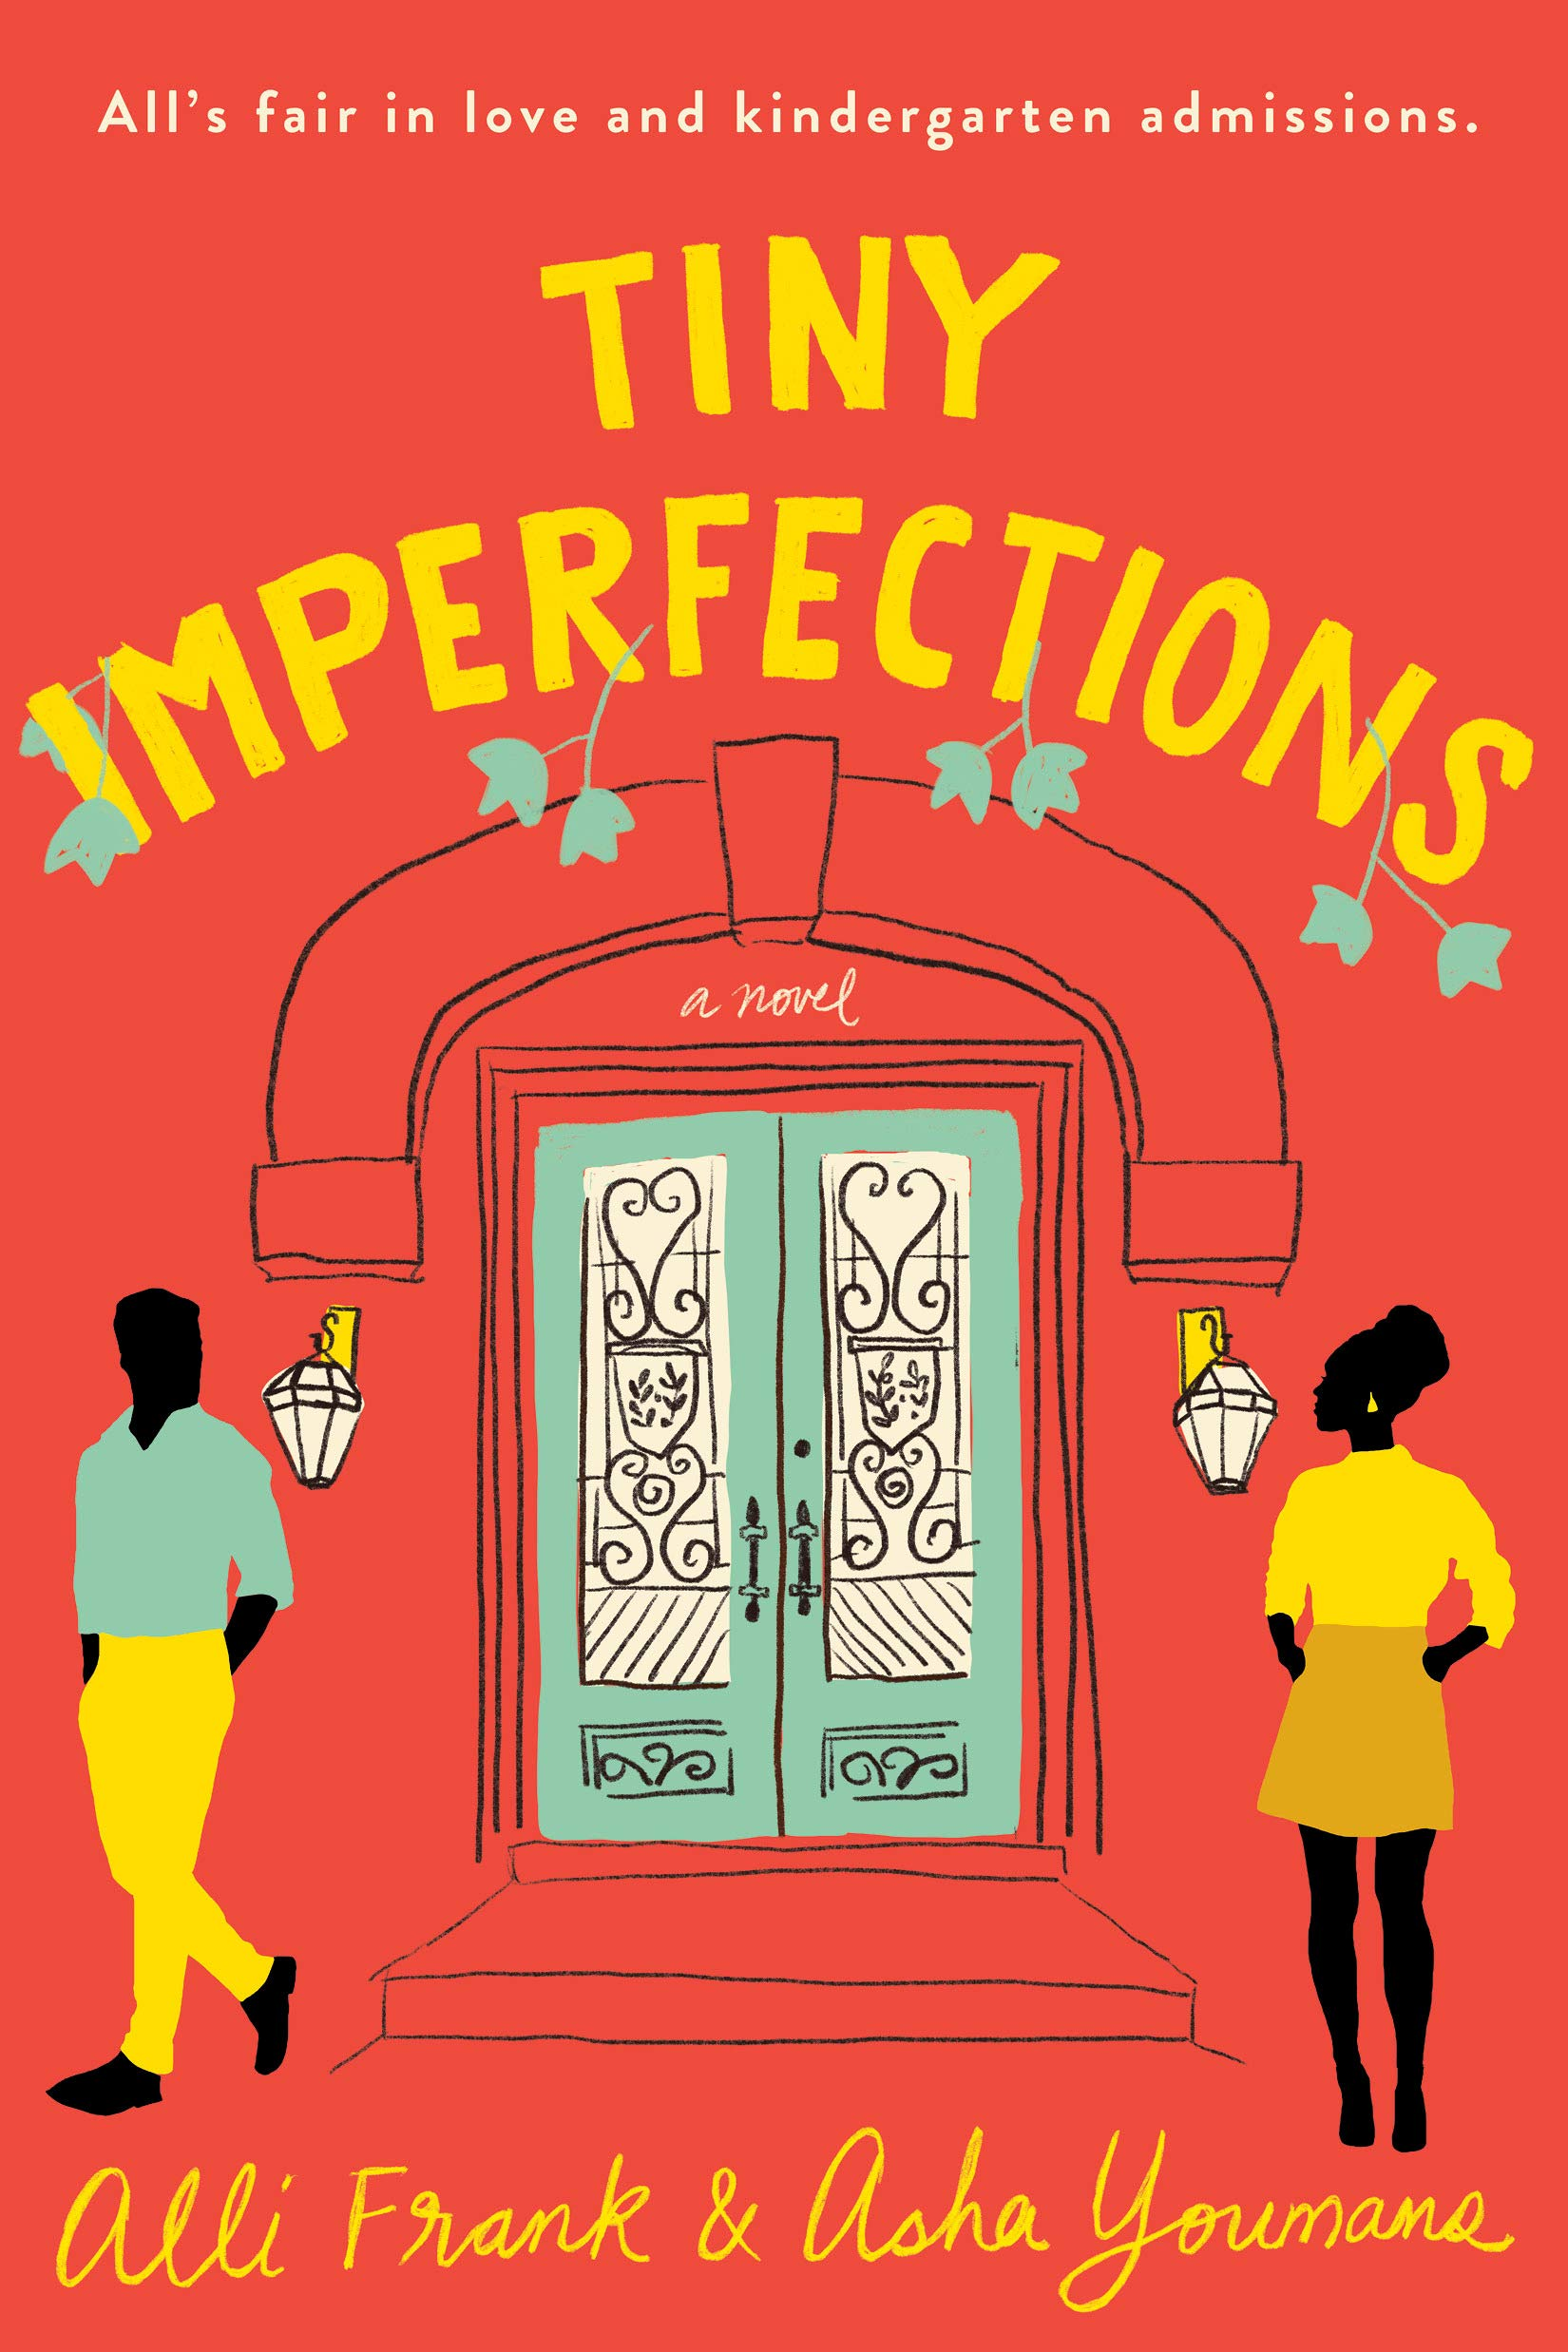 Tiny Imperfections by G.P. Putnam's Sons